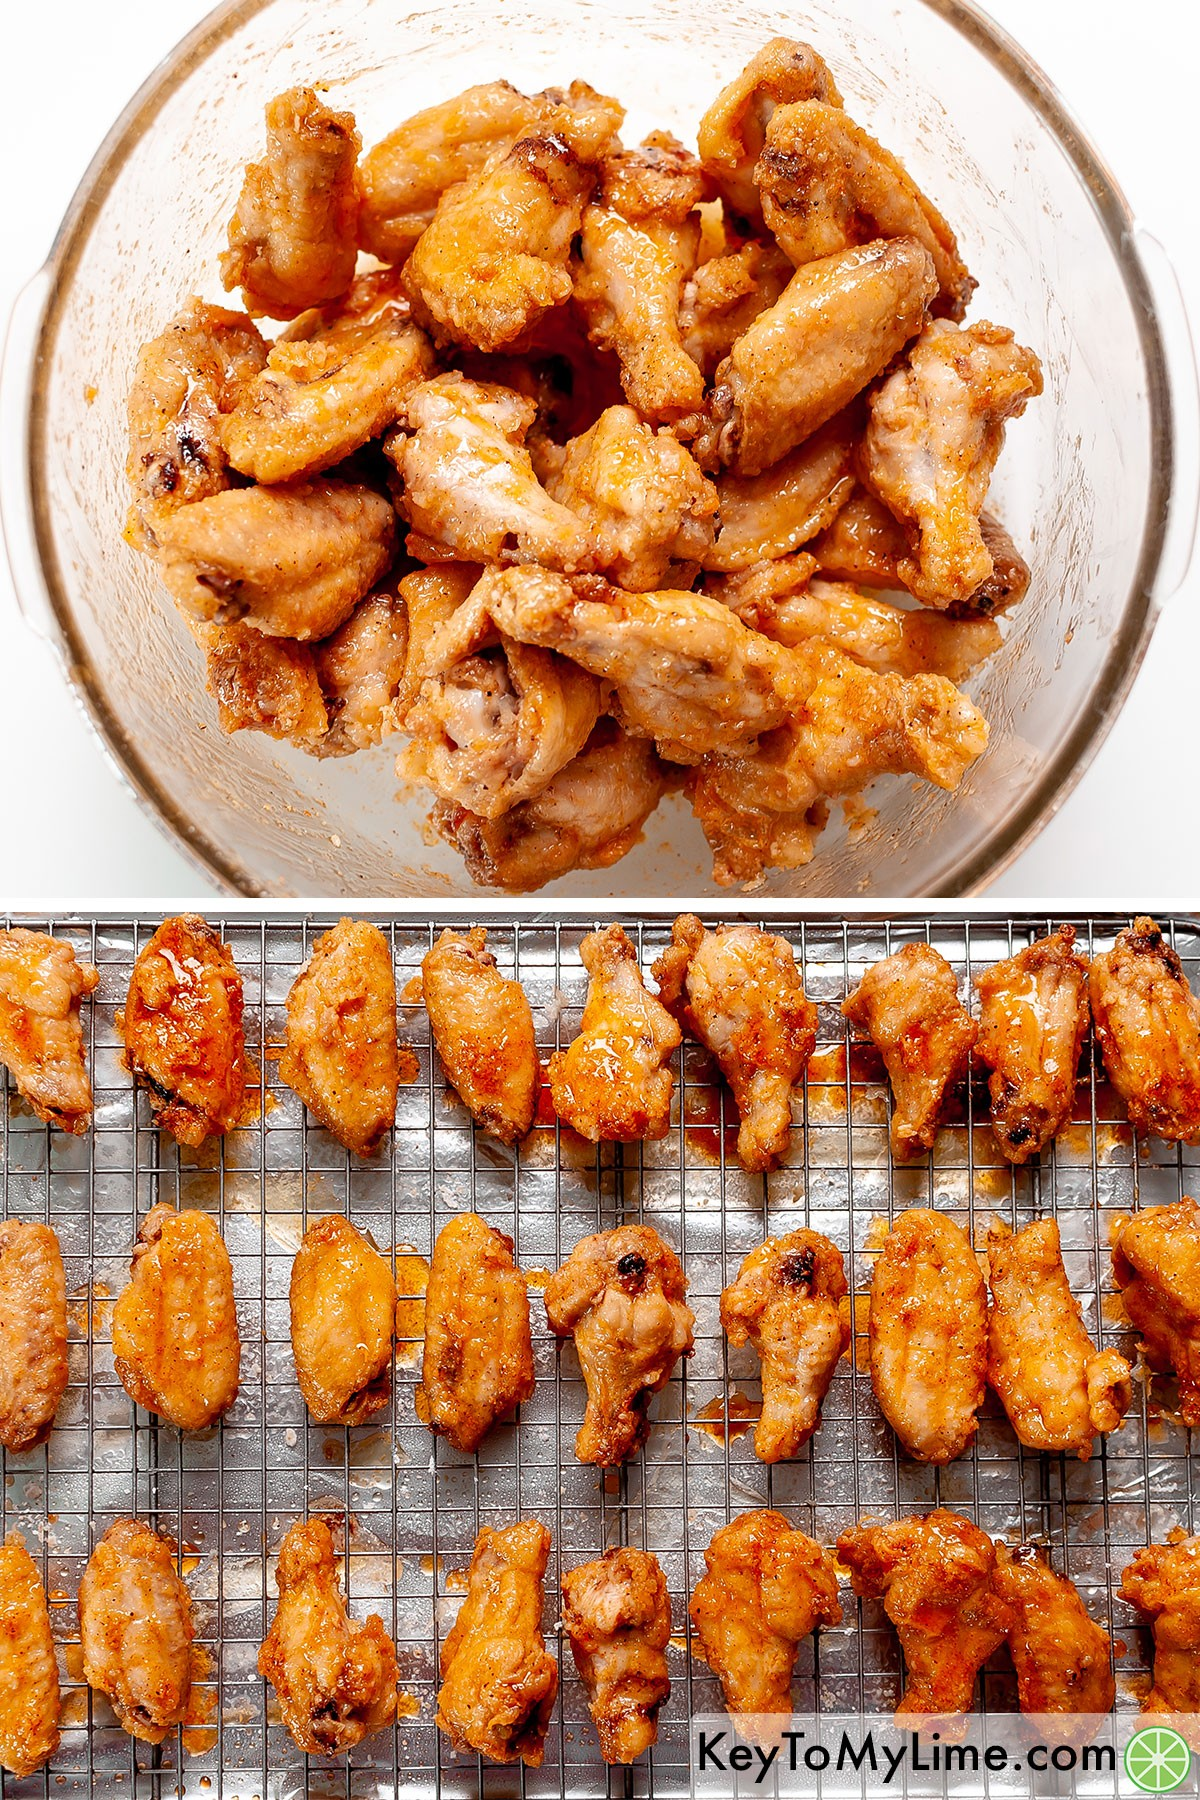 Coating cooked wings in garlic butter sauce, then baking them a second time.